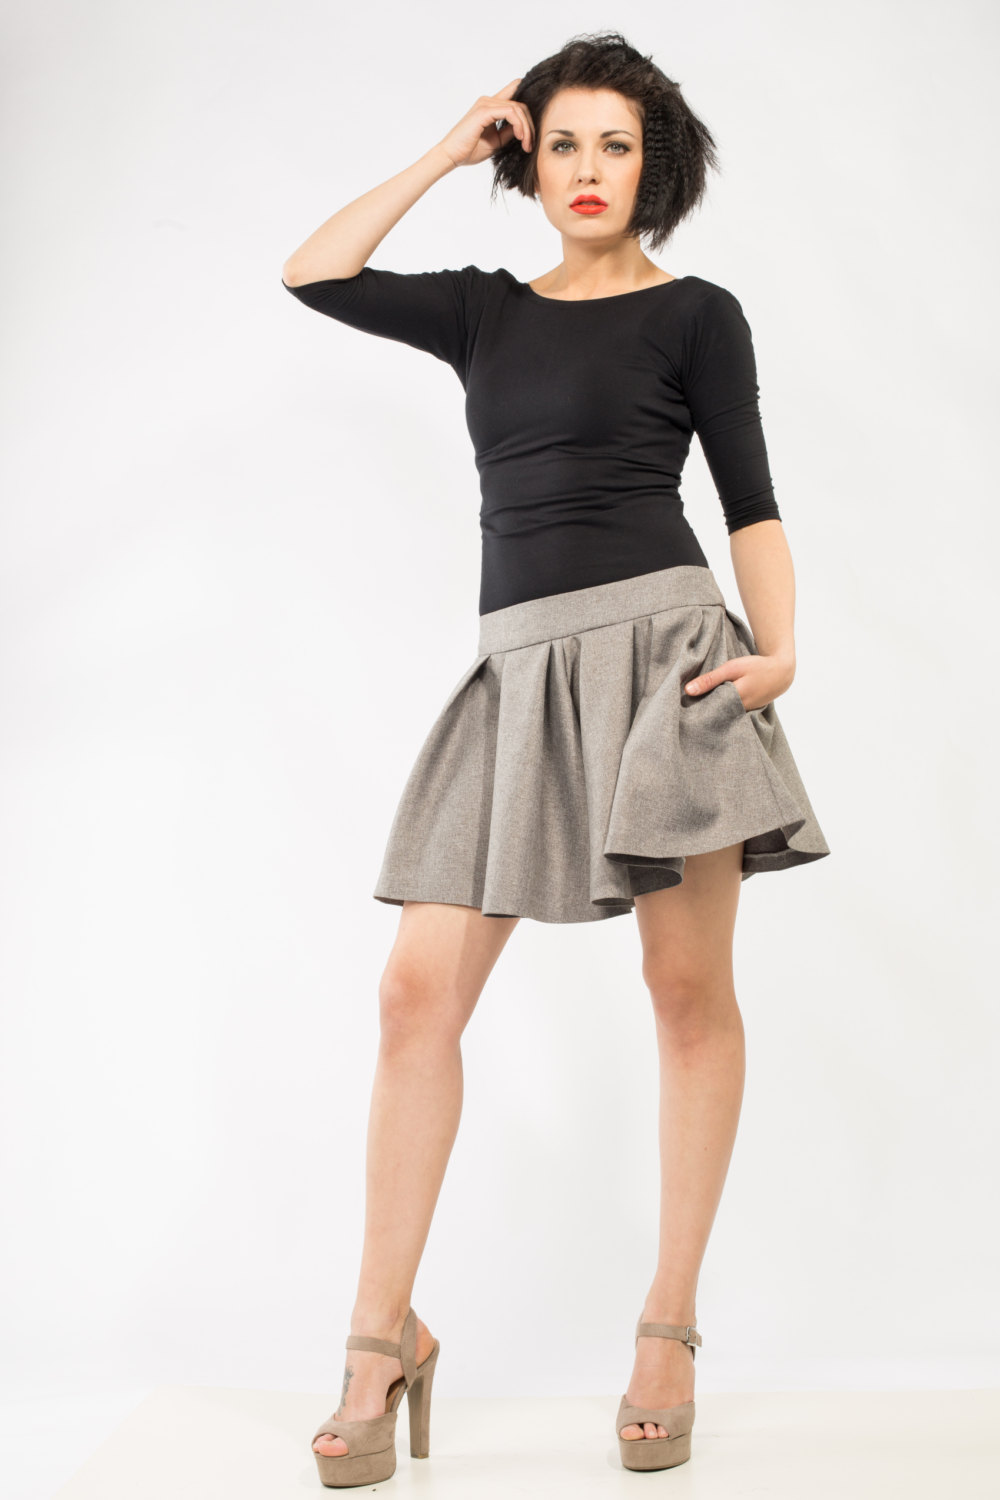 Gray Short Skirt with pockets Made to order